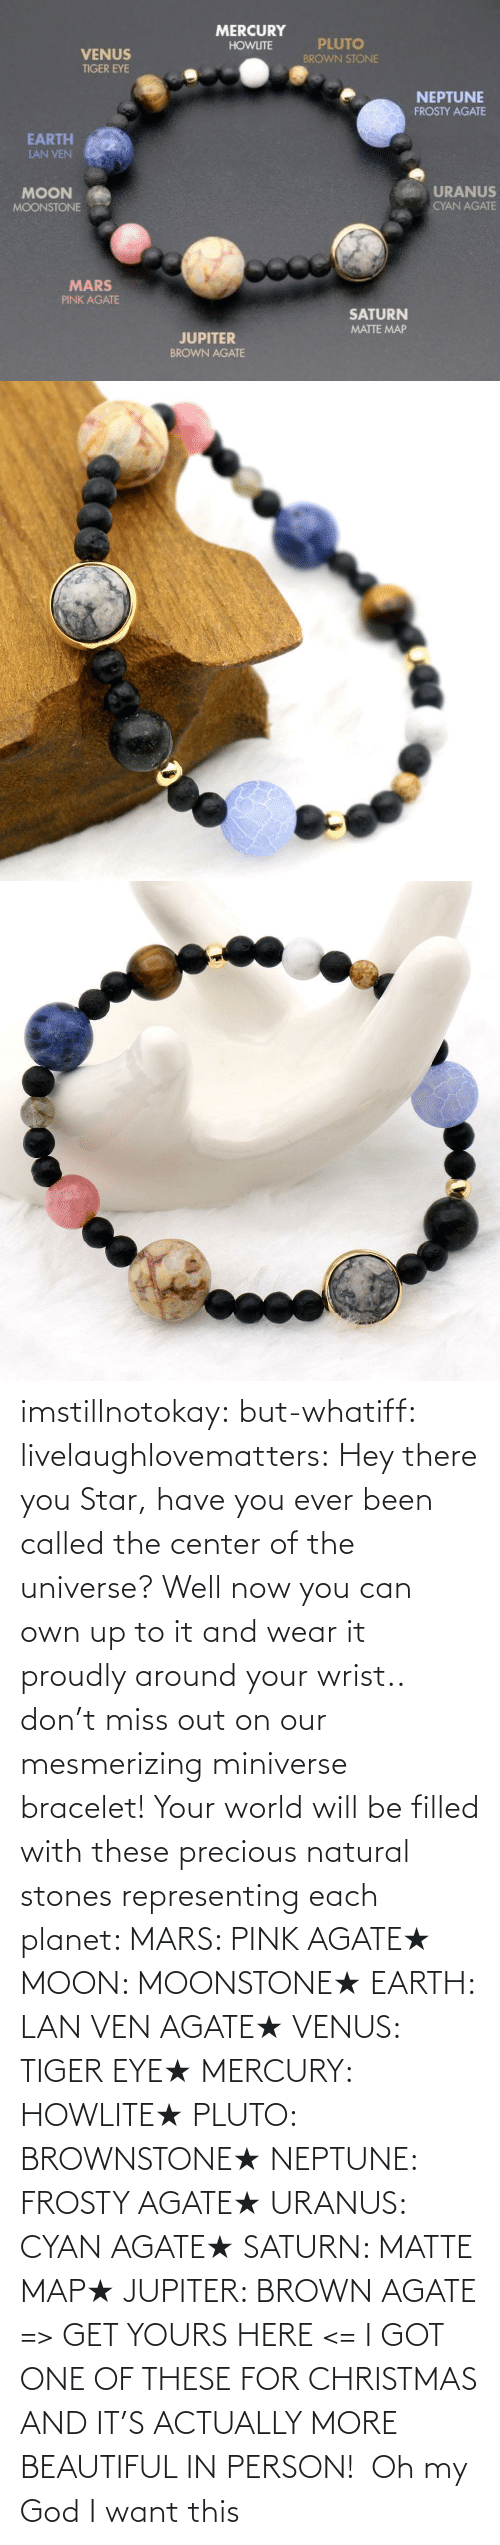 Have: imstillnotokay:  but-whatiff: livelaughlovematters:  Hey there you Star, have you ever been called the center of the universe? Well now you can own up to it and wear it proudly around your wrist.. don't miss out on our mesmerizing miniverse bracelet! Your world will be filled with these precious natural stones representing each planet:  MARS: PINK AGATE★ MOON: MOONSTONE★ EARTH: LAN VEN AGATE★ VENUS: TIGER EYE★ MERCURY: HOWLITE★ PLUTO: BROWNSTONE★ NEPTUNE: FROSTY AGATE★ URANUS: CYAN AGATE★ SATURN: MATTE MAP★ JUPITER: BROWN AGATE => GET YOURS HERE <=  I GOT ONE OF THESE FOR CHRISTMAS AND IT'S ACTUALLY MORE BEAUTIFUL IN PERSON!     Oh my God I want this